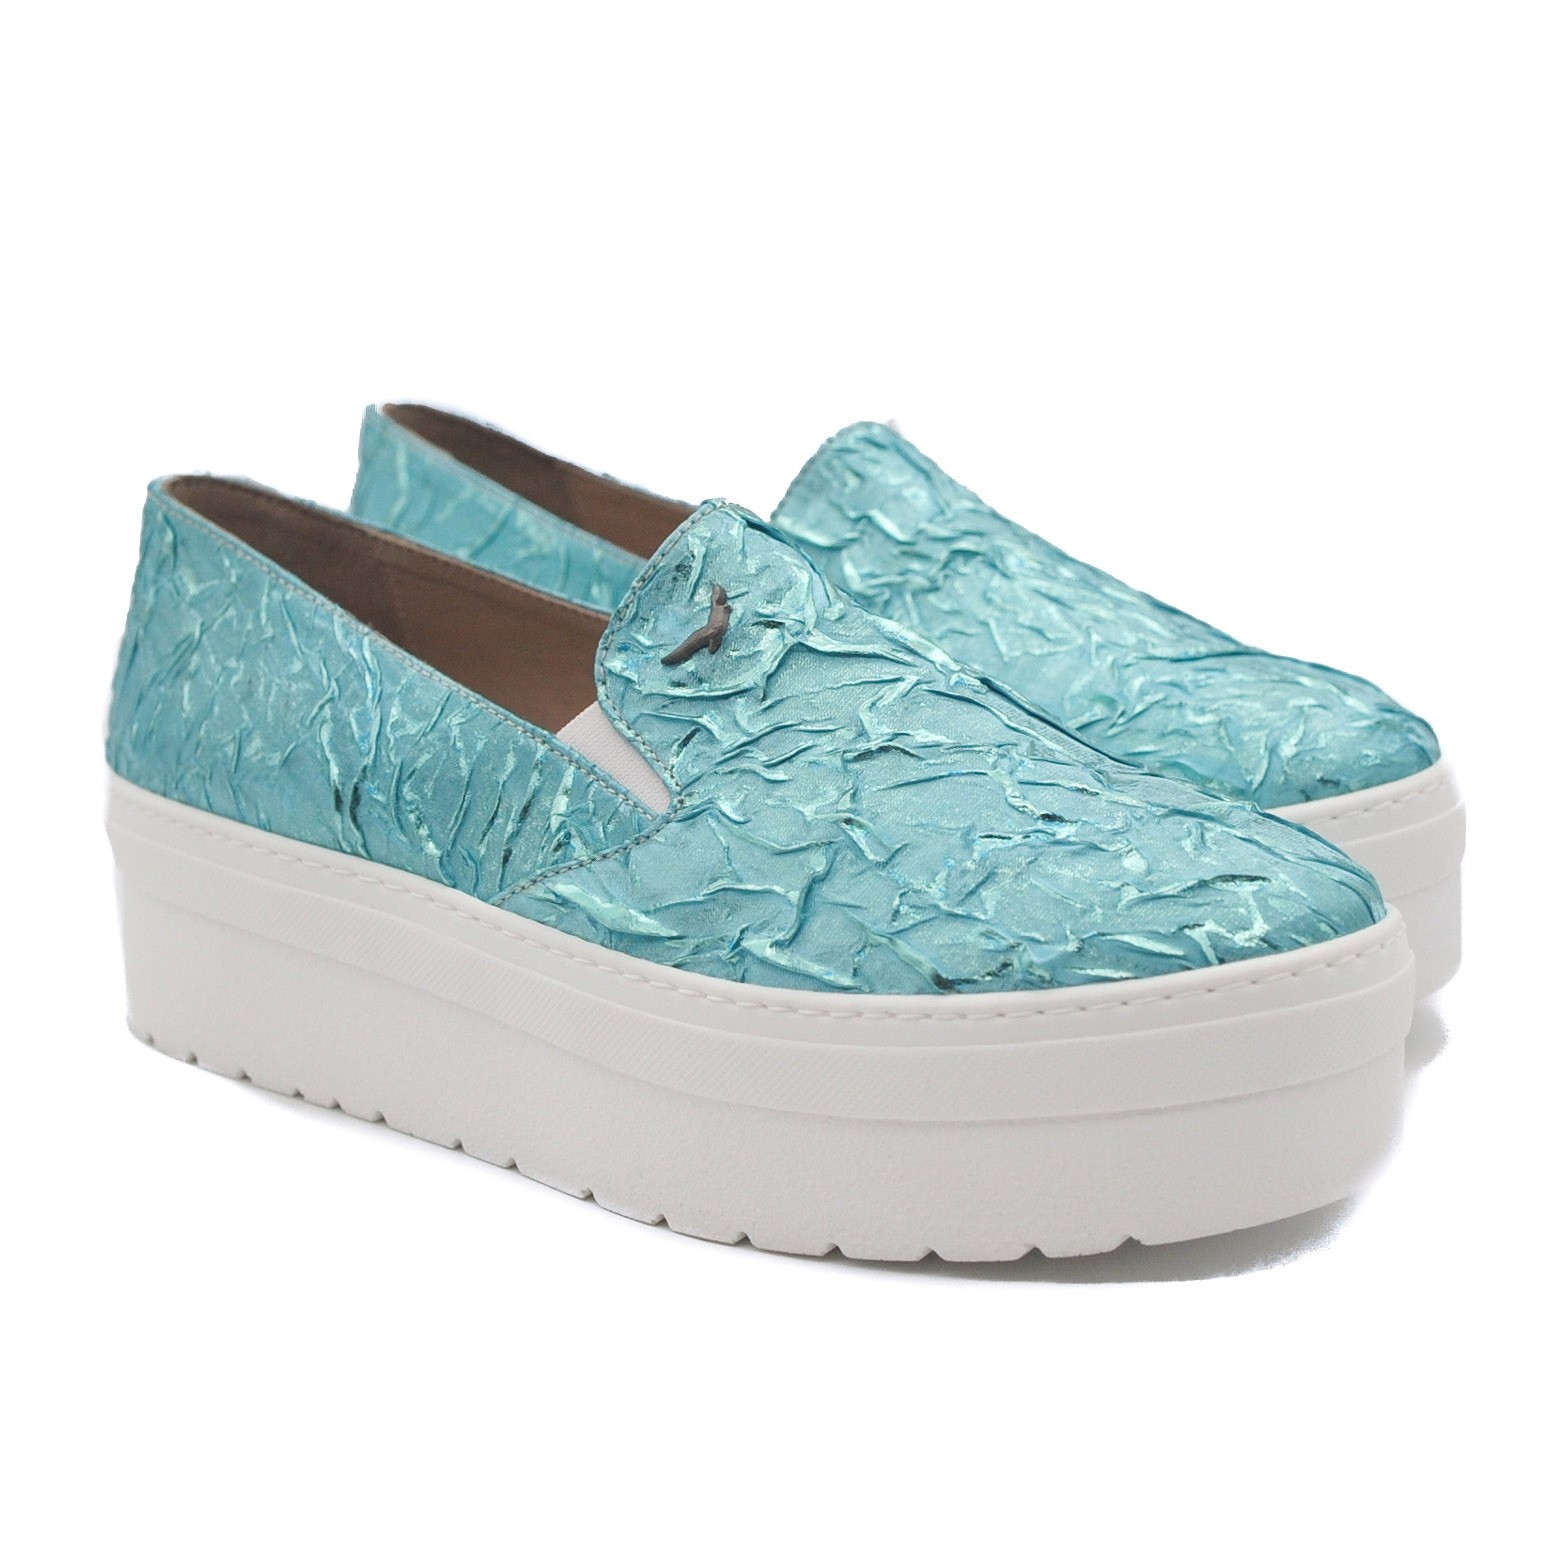 Art Goya Ladies' Turquoise Slip on Platform Trainer Loafers with Textured Upper